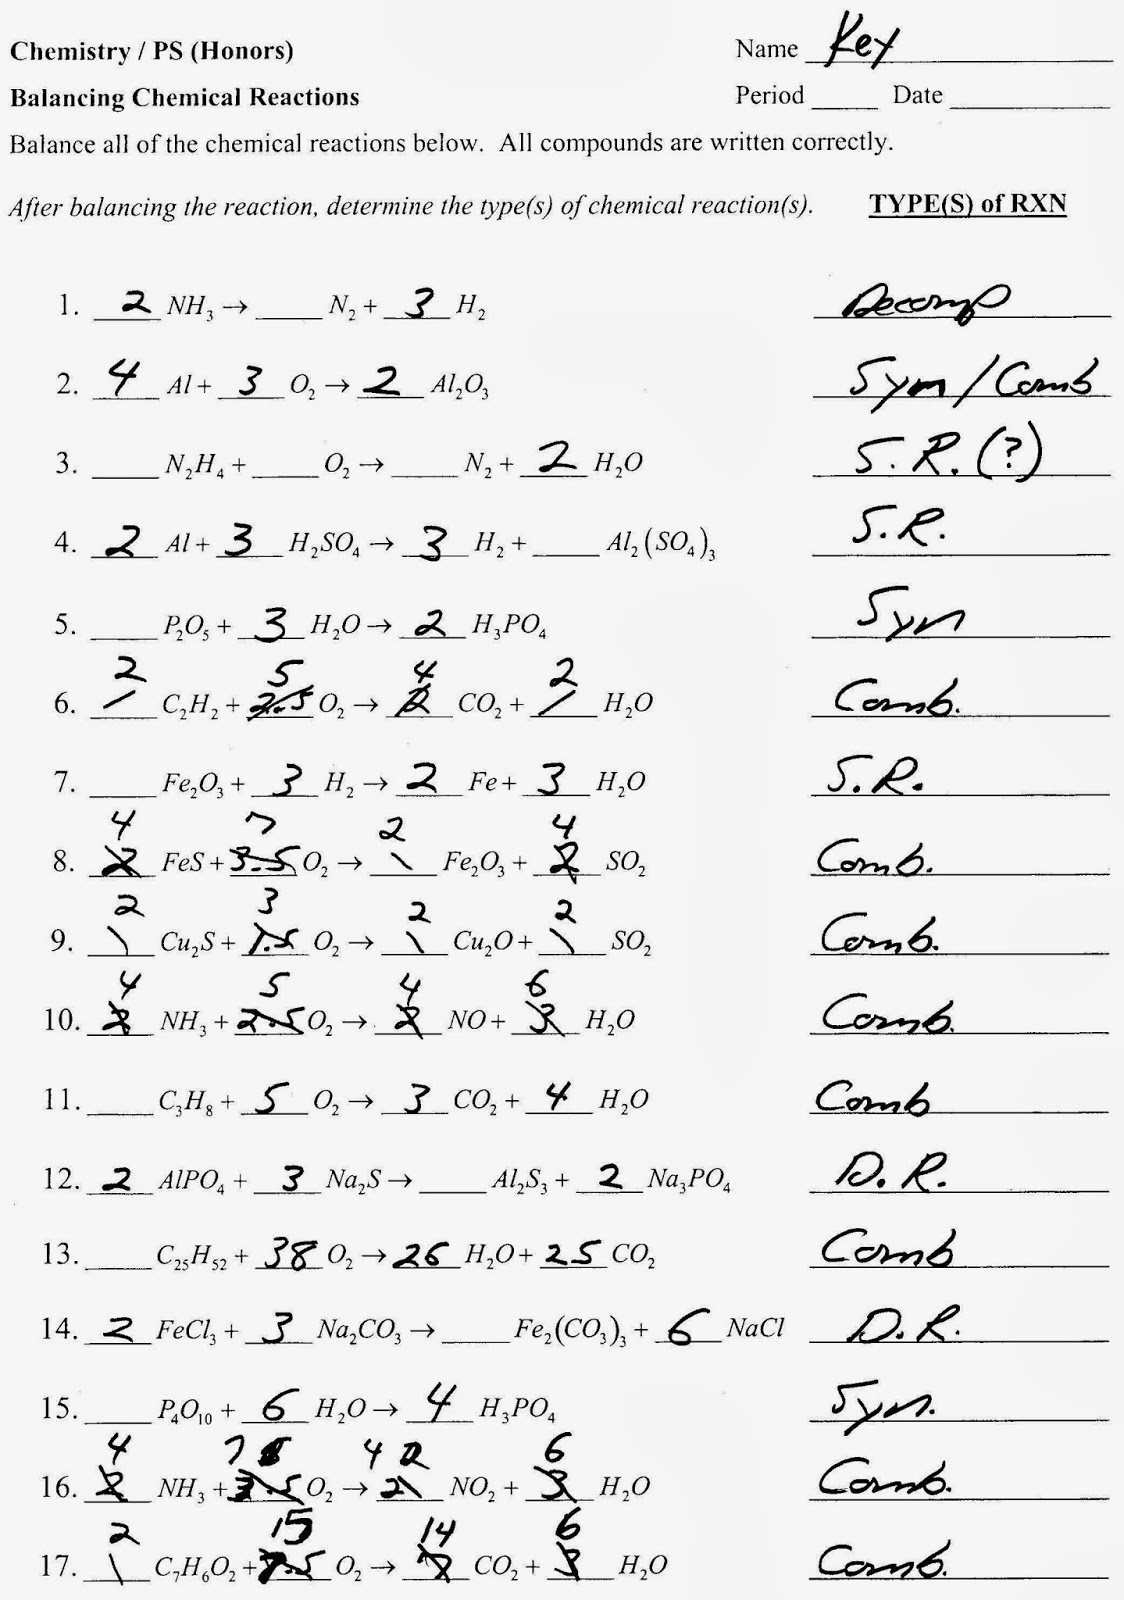 Aldiablosus  Nice Balancing Chemical Equations Worksheets Balancing Chemical  With Magnificent Balancing Chemical Equations Worksheet Answer Key On Chemistry Double With Cool Earth Moon Sun Worksheets Also Algebra Ks Worksheet In Addition Free Printable Numbers Worksheets And Listing Outcomes Worksheet As Well As Maths Grade  Free Worksheets Additionally Translations Rotations And Reflections Worksheets From Letstalkhiphopus With Aldiablosus  Magnificent Balancing Chemical Equations Worksheets Balancing Chemical  With Cool Balancing Chemical Equations Worksheet Answer Key On Chemistry Double And Nice Earth Moon Sun Worksheets Also Algebra Ks Worksheet In Addition Free Printable Numbers Worksheets From Letstalkhiphopus